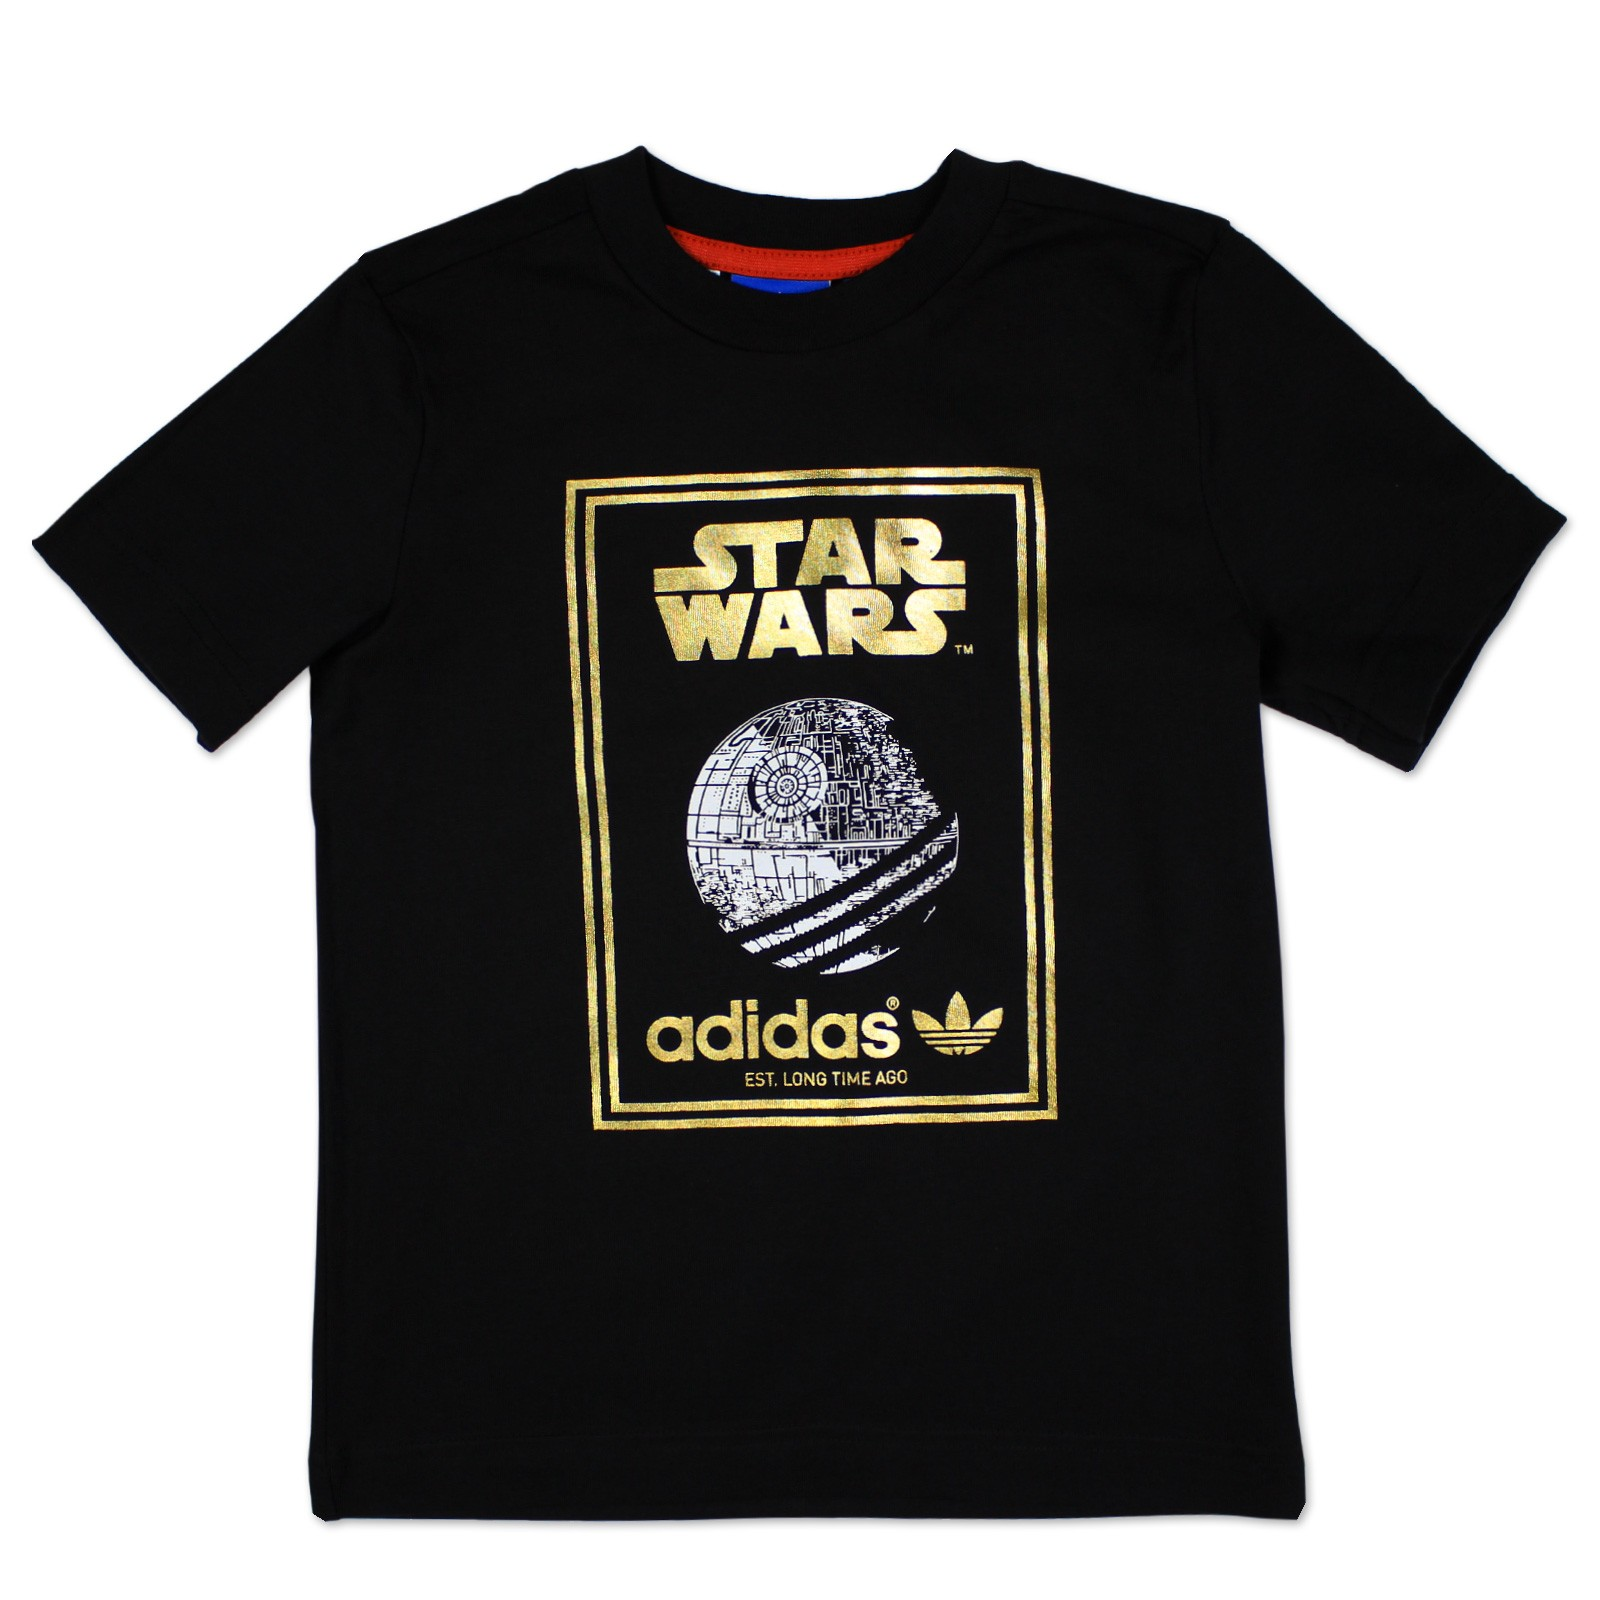 adidas originals star wars enfants gar on tee shirt death t shirt noir dor 104 ebay. Black Bedroom Furniture Sets. Home Design Ideas